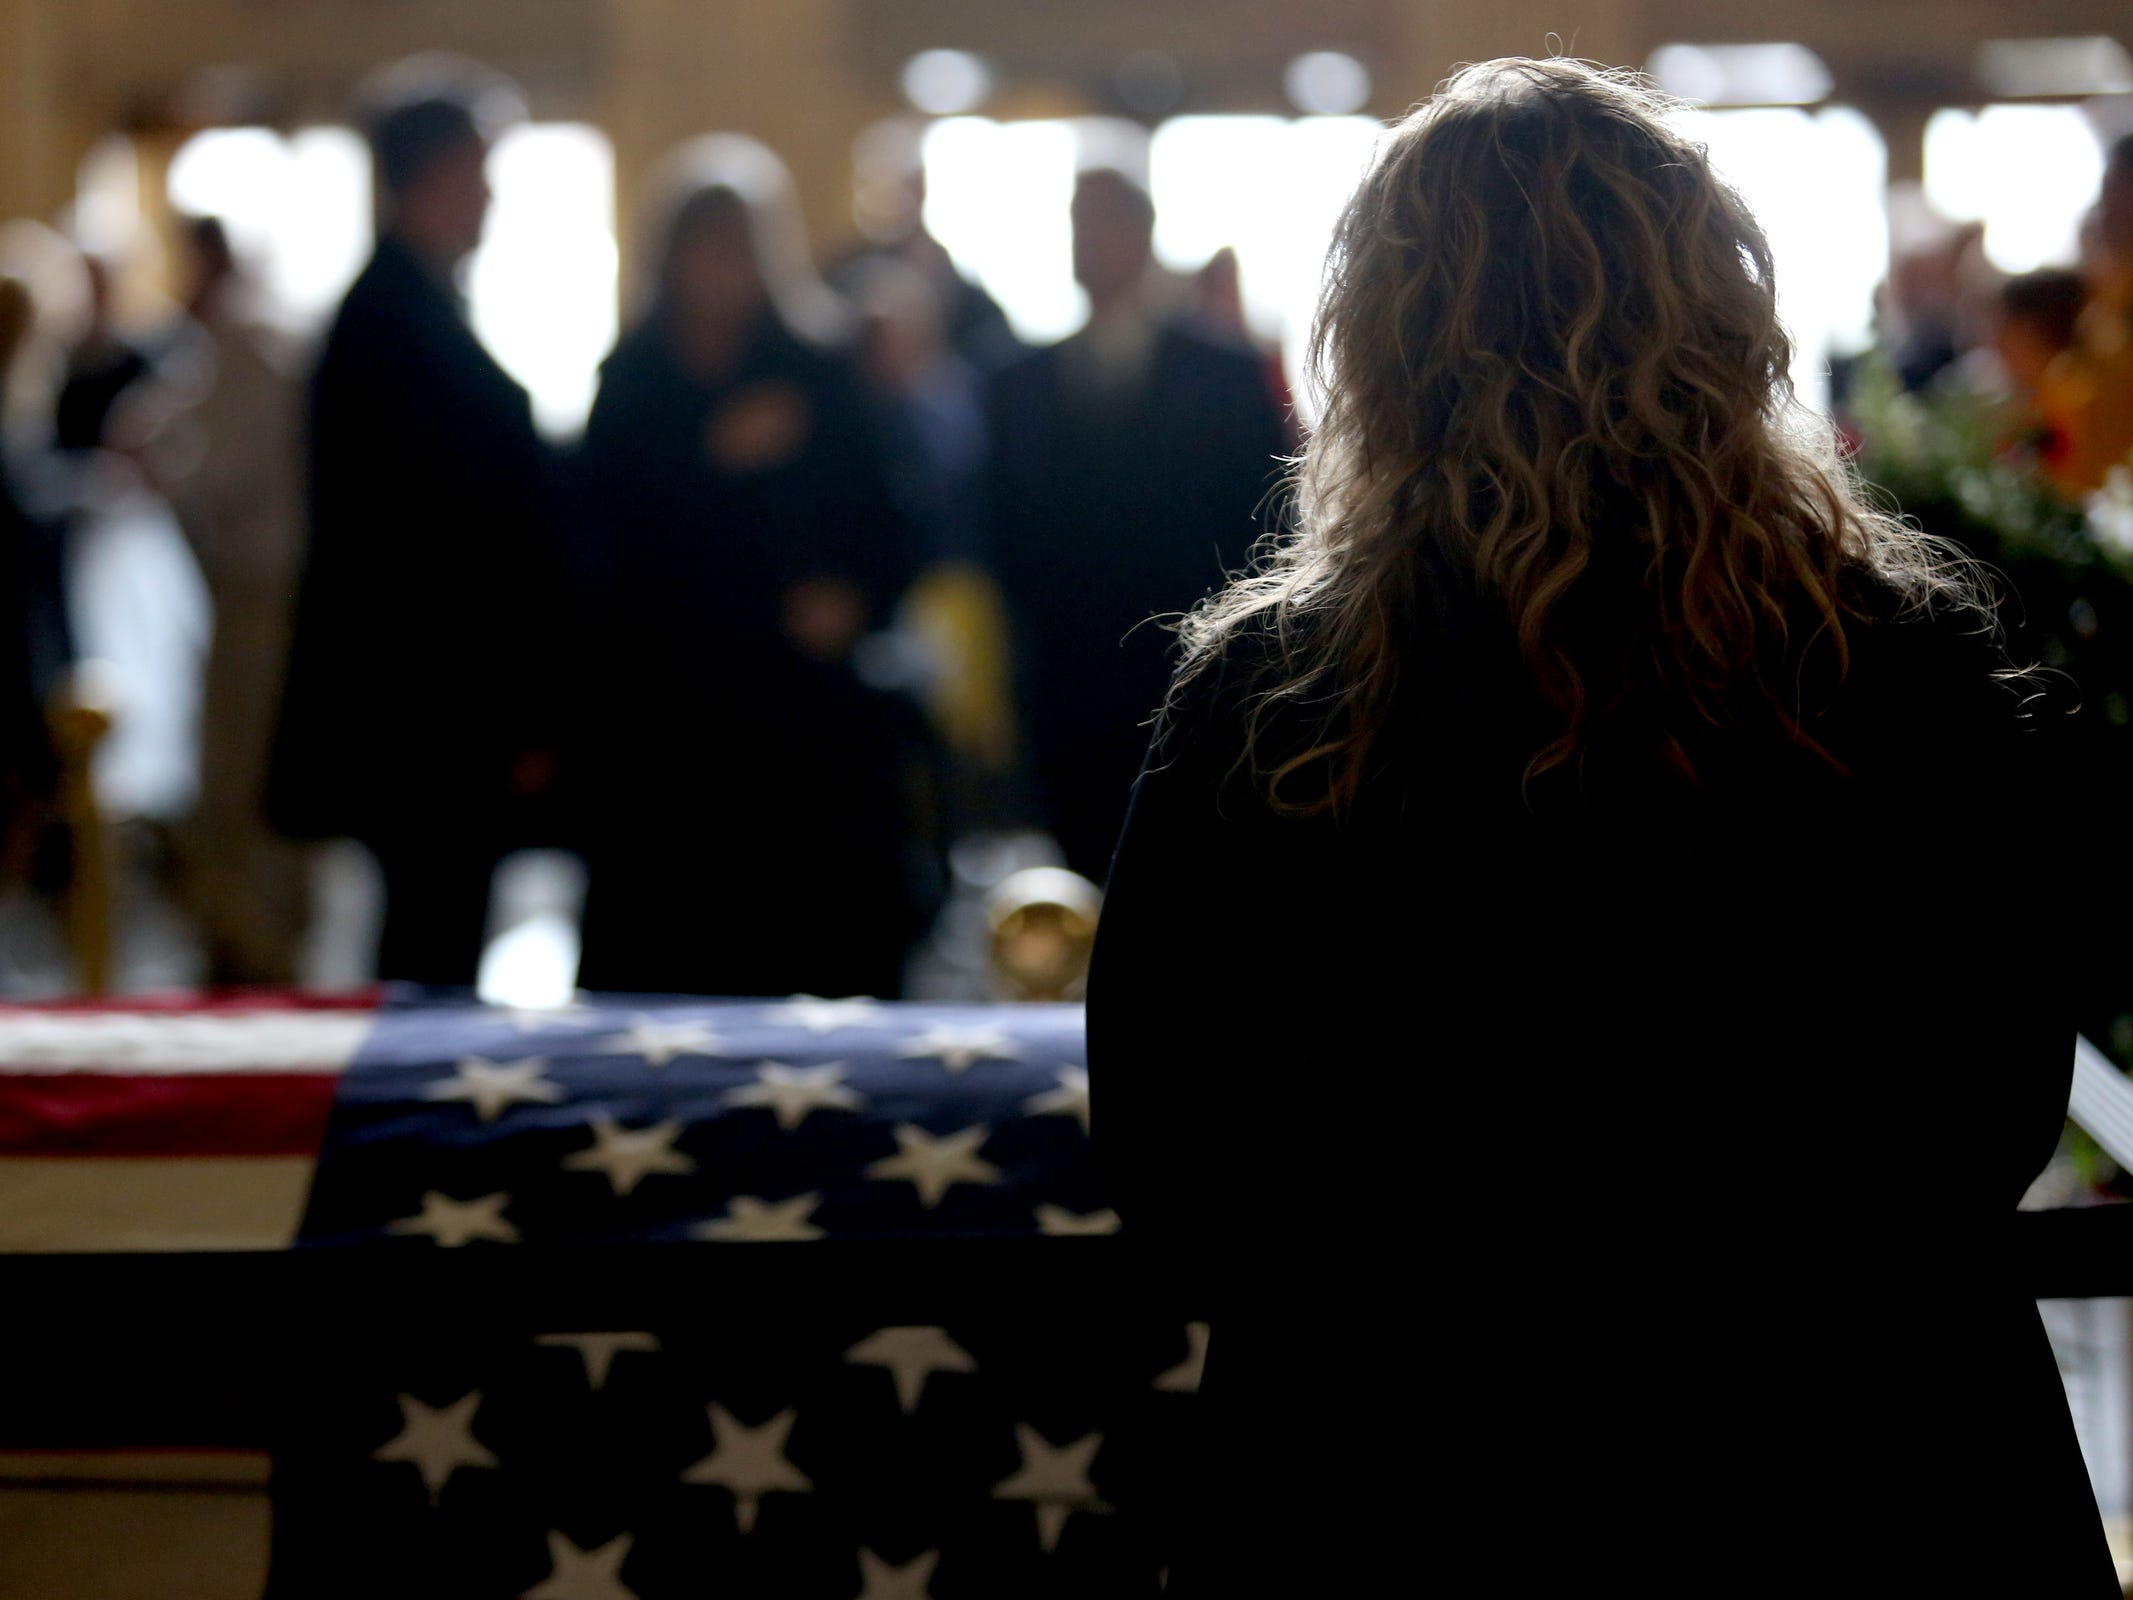 A woman stands near the casket as Secretary of State Dennis Richardson lies in state in the rotunda at the Oregon State Capitol in Salem on Wednesday, March 6, 2019.